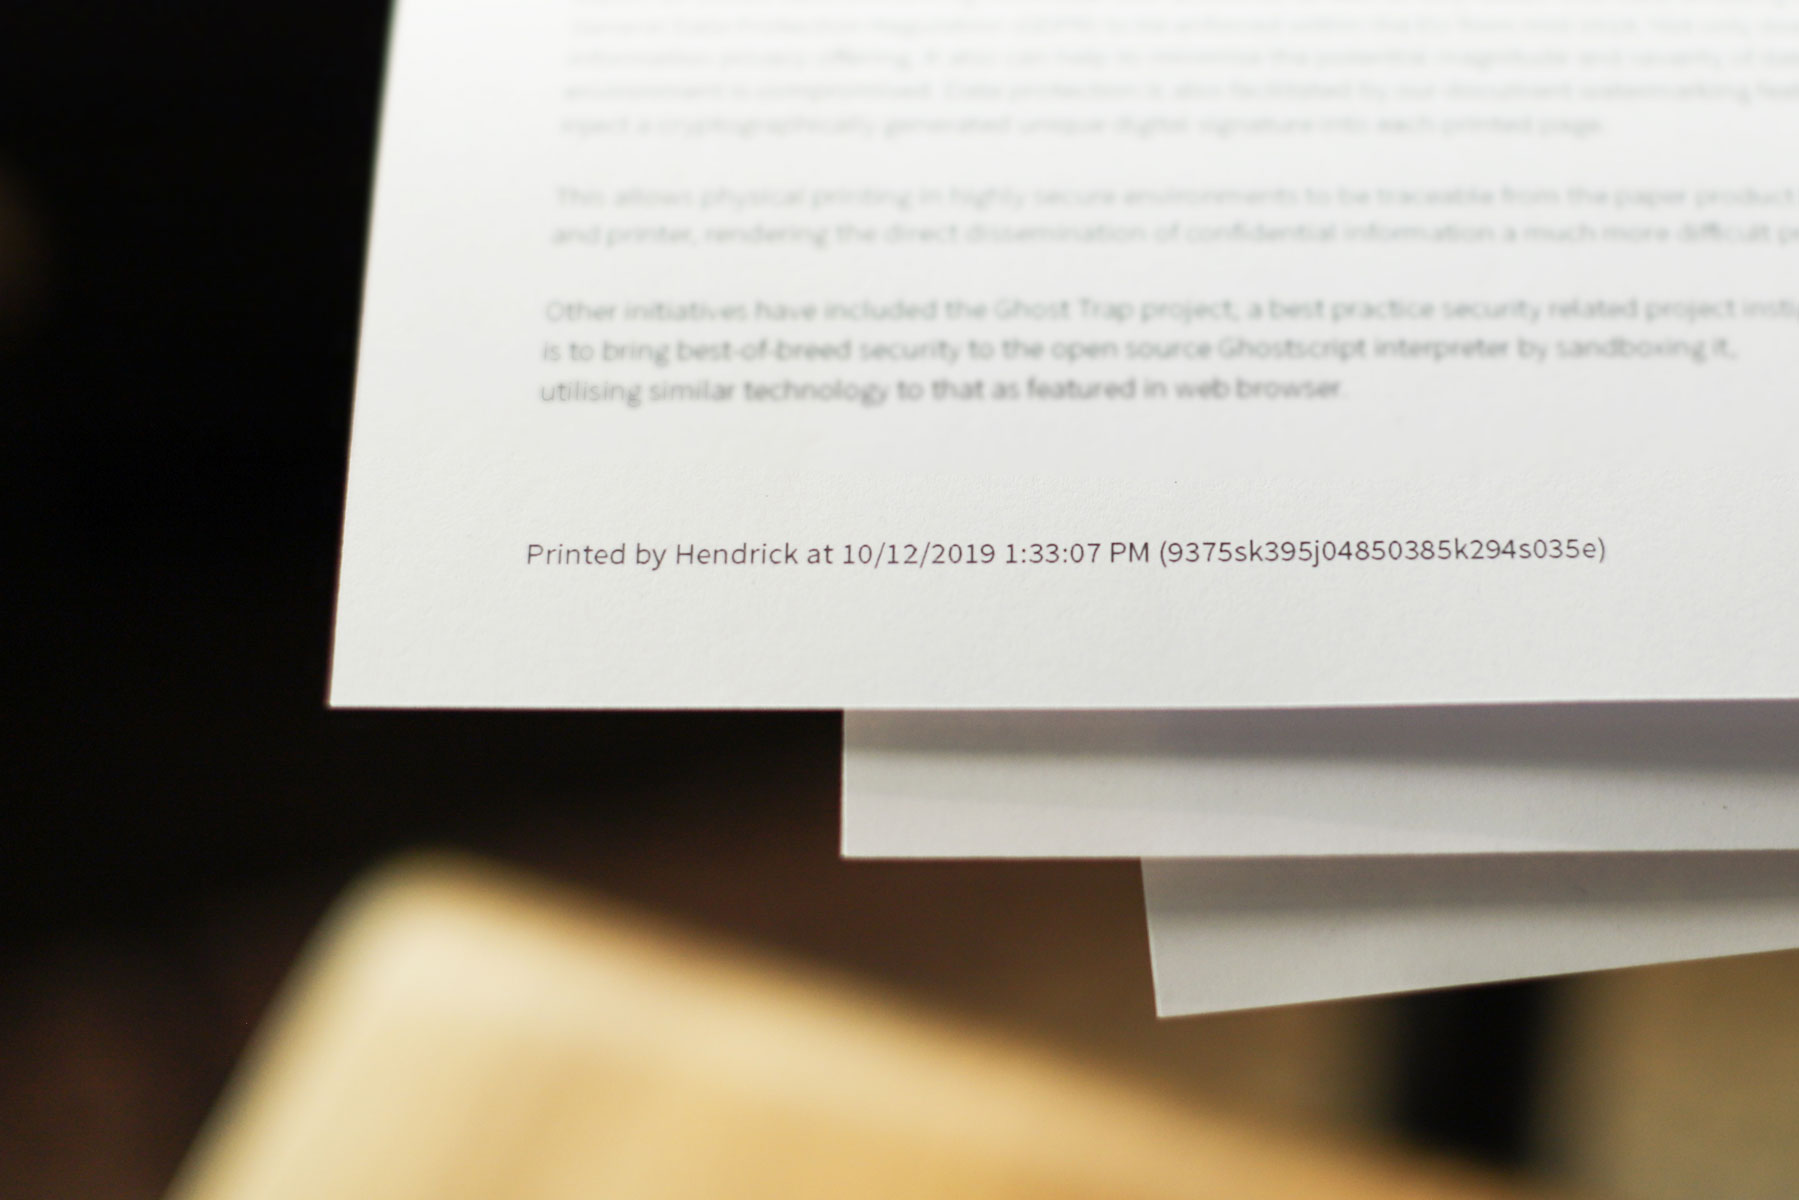 Keeping data secure for peace-of-mind printing